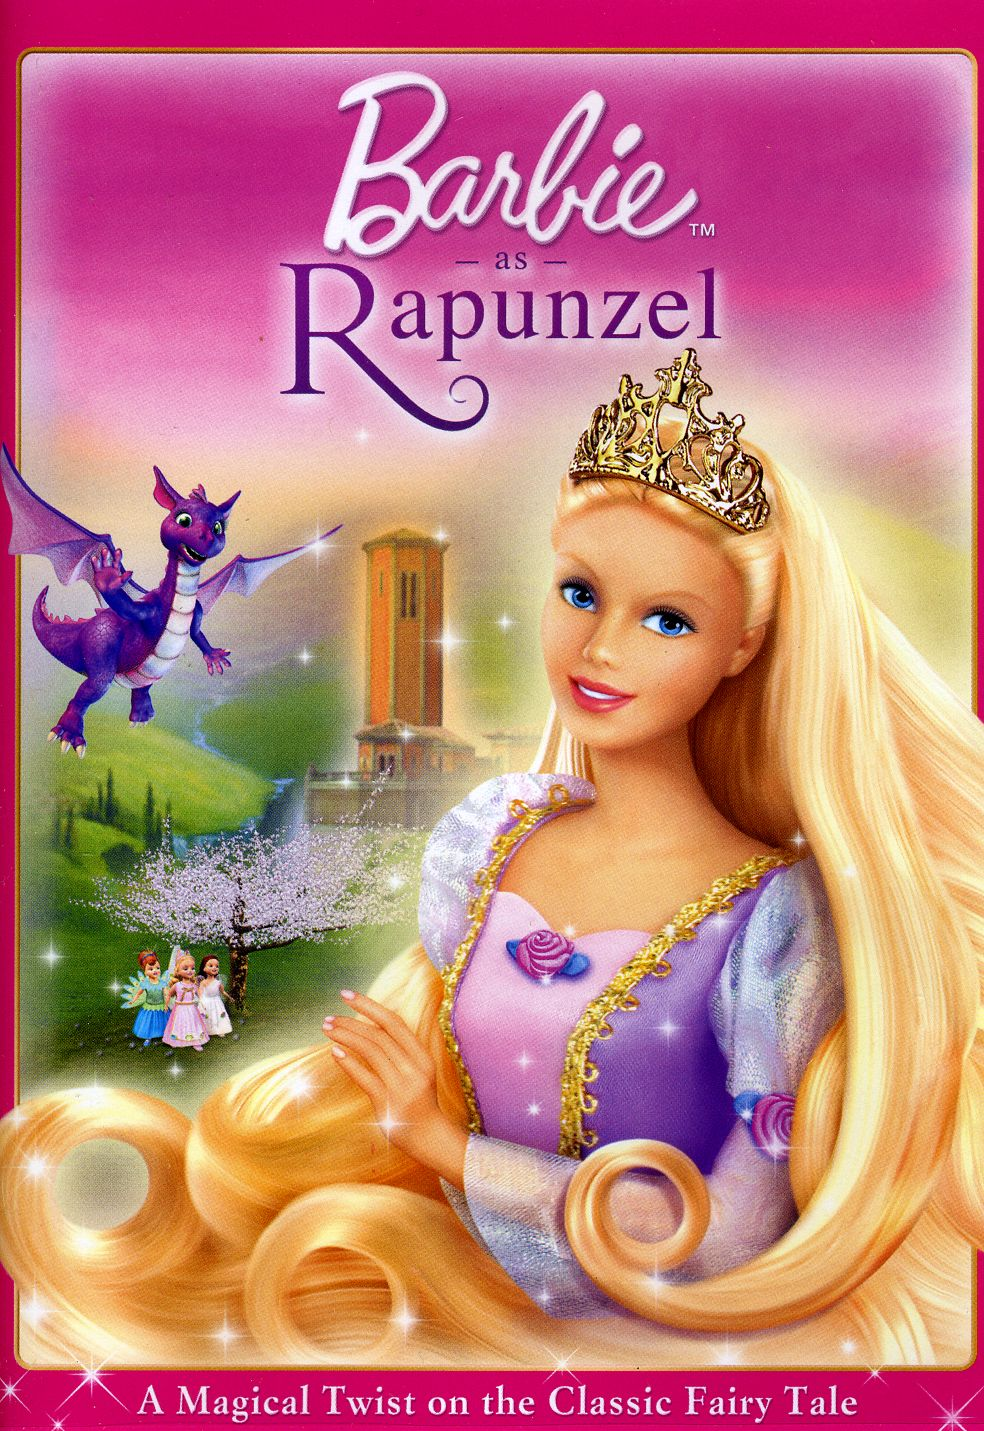 barbie rapunzel movies movie dvd disney hair wikia google 2002 wiki magic most history had posters